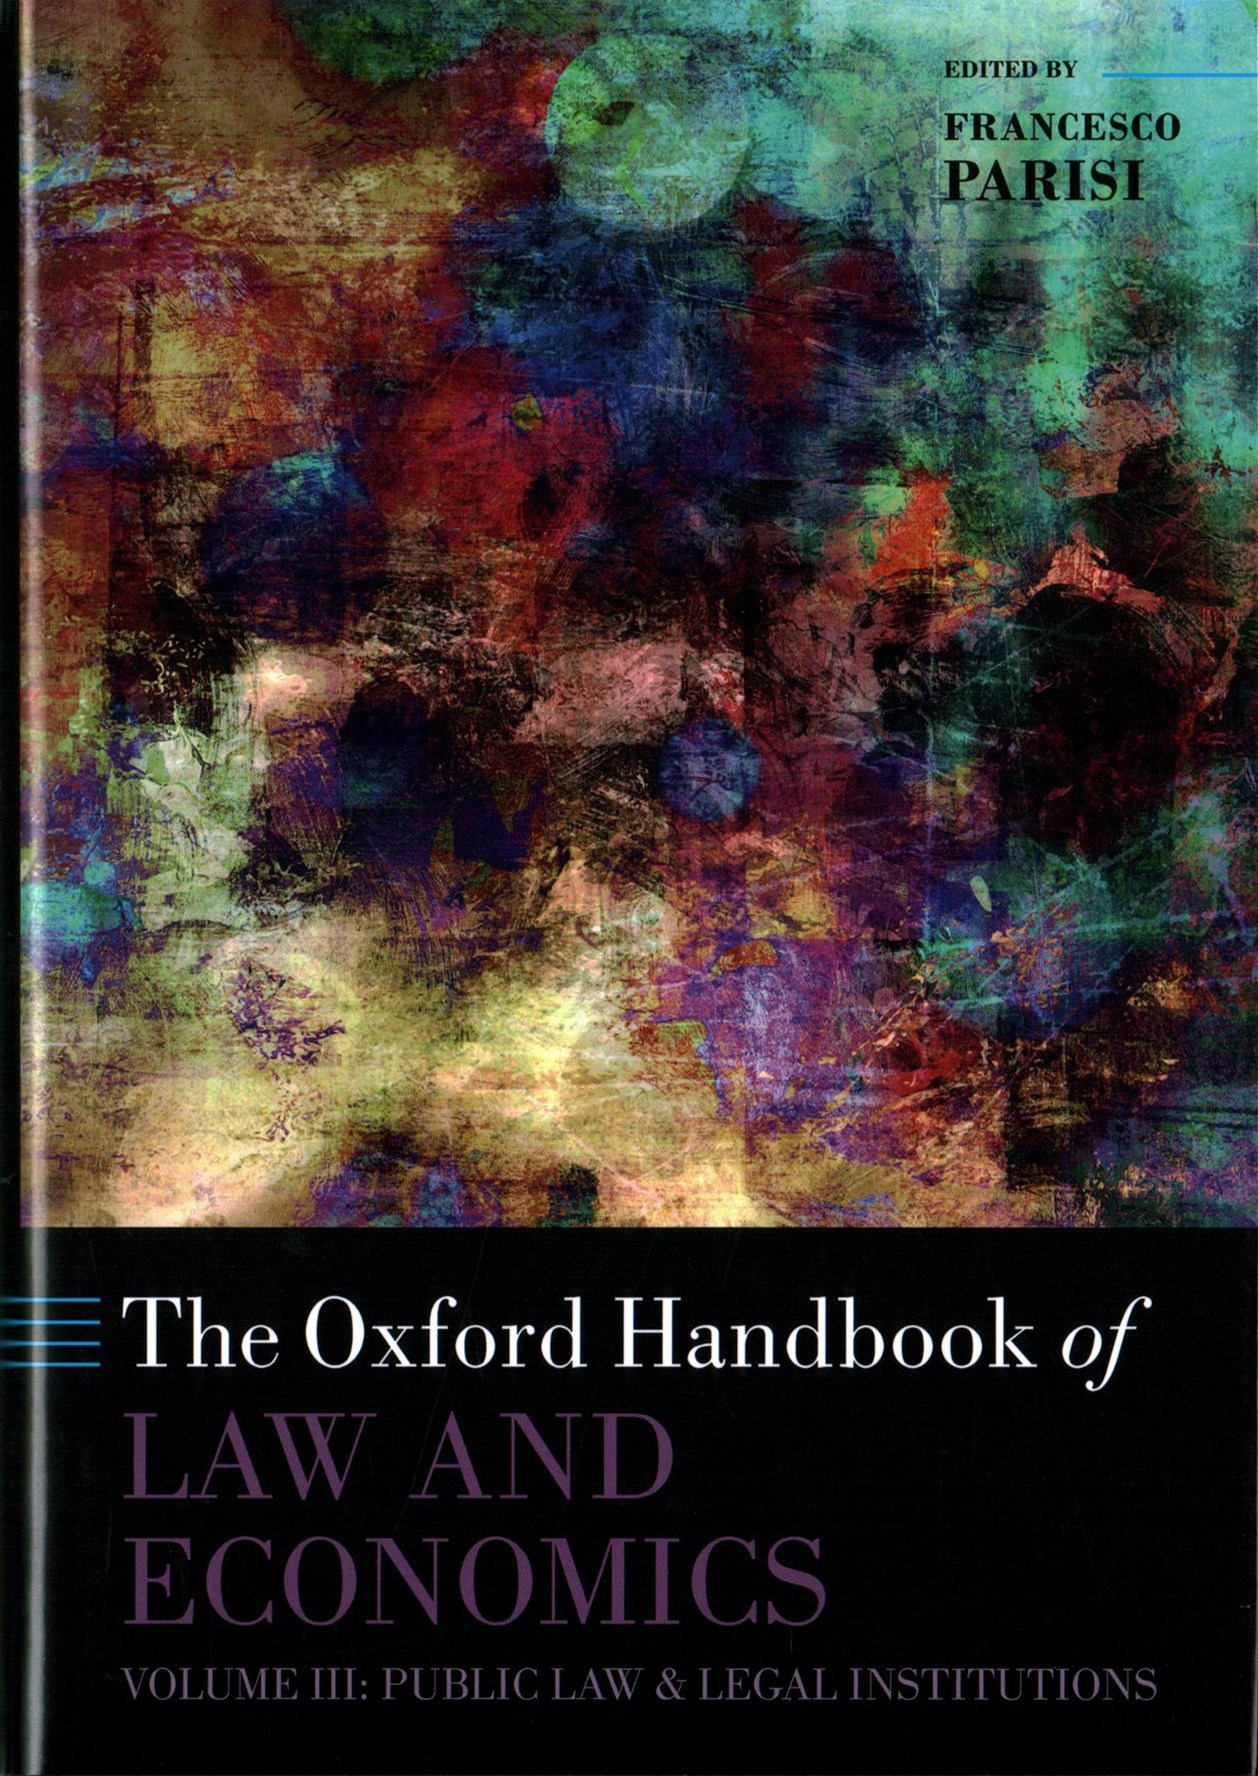 The Oxford Handbook of Law and Economics, Volume 3